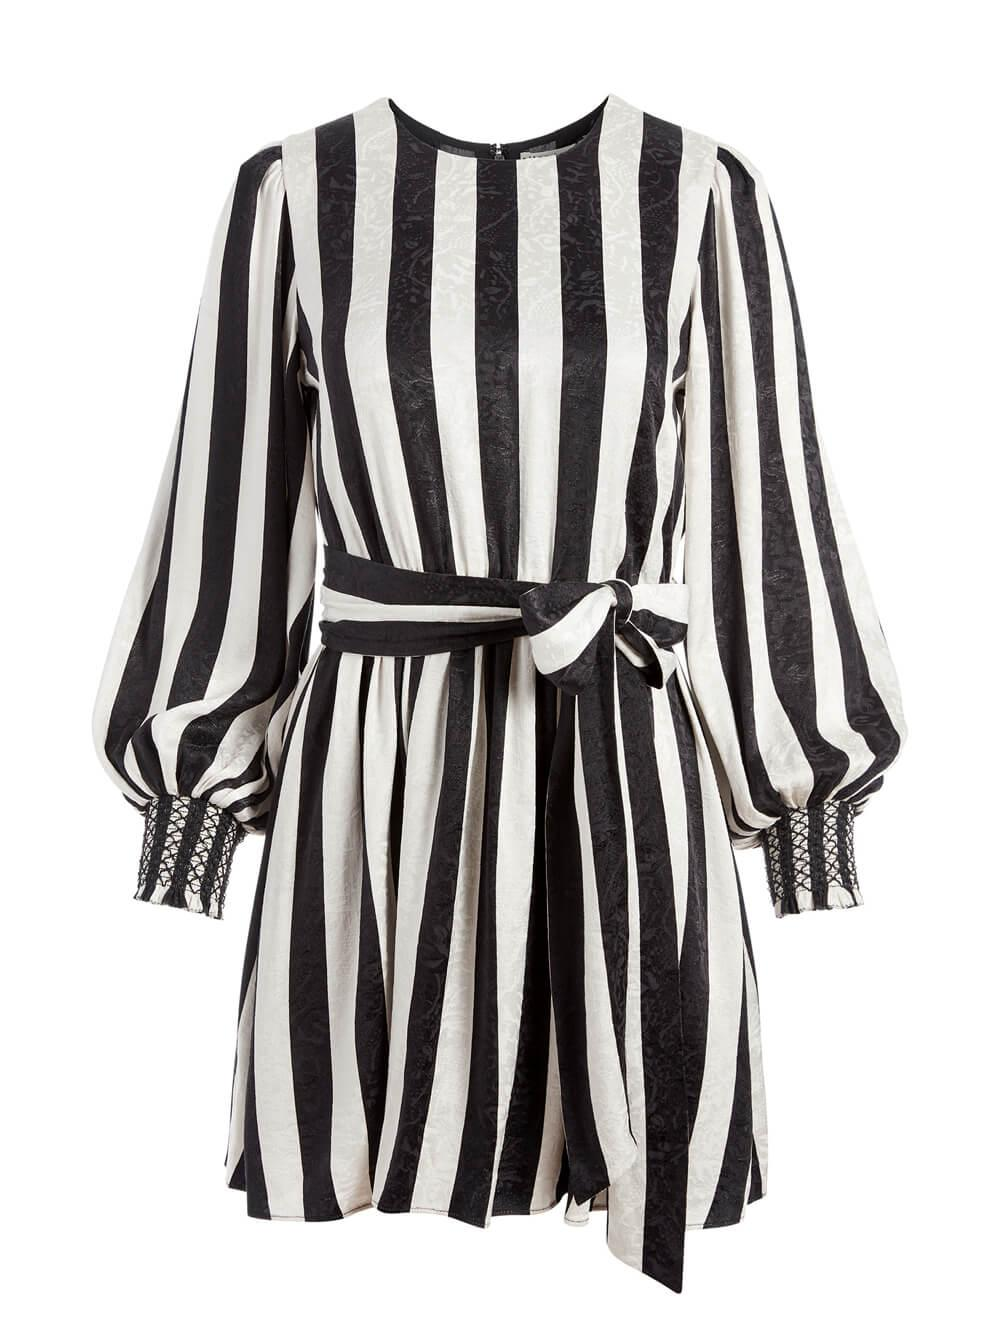 Estefana Striped Dress Item # CC008P27509